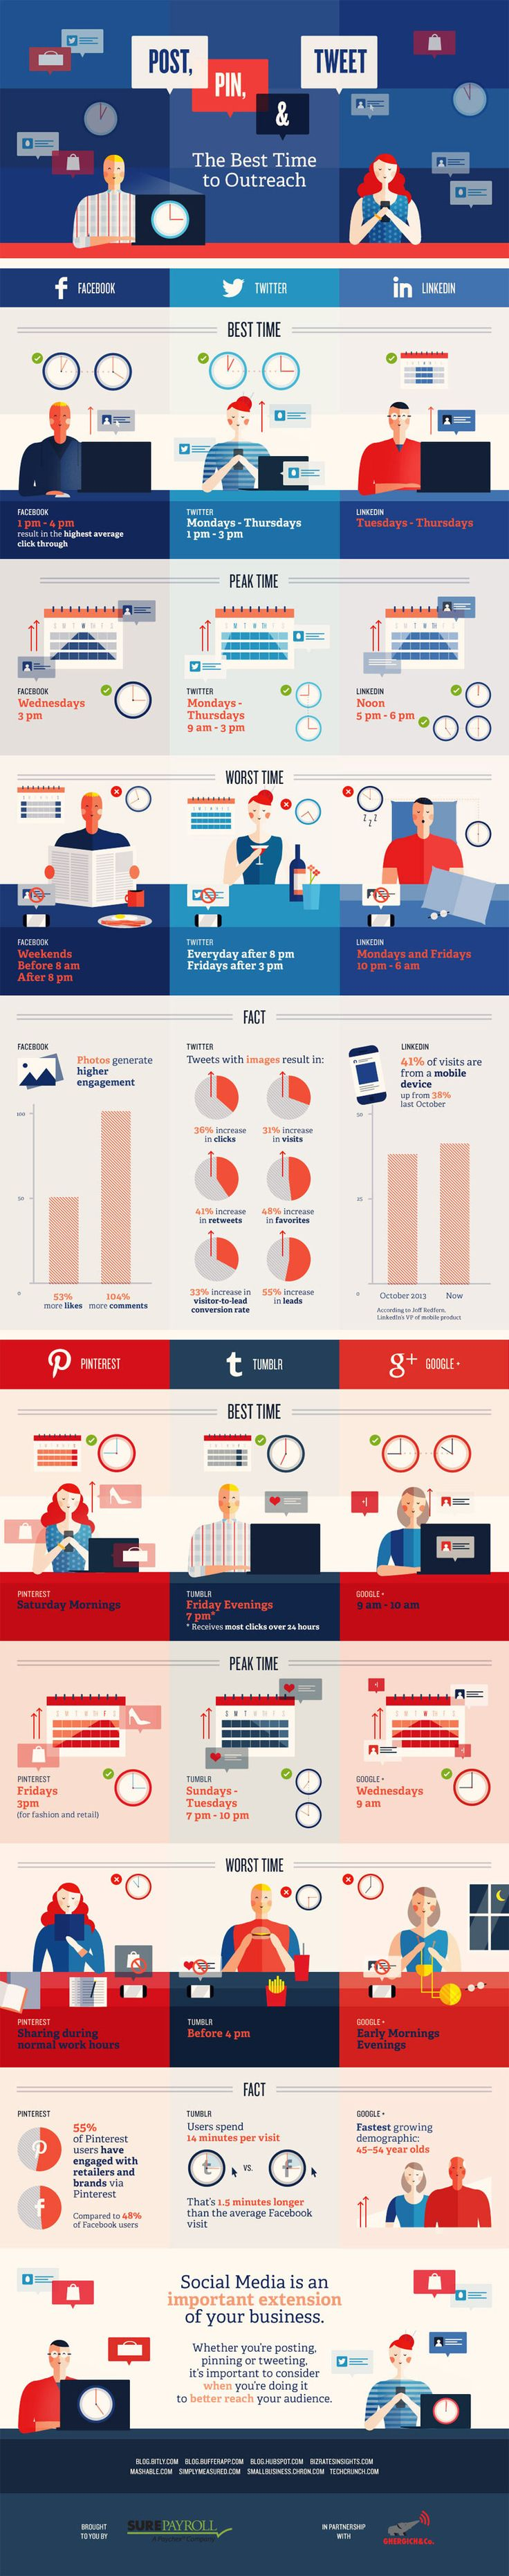 Timing is everything -- best time to post in Social Media [infographic]